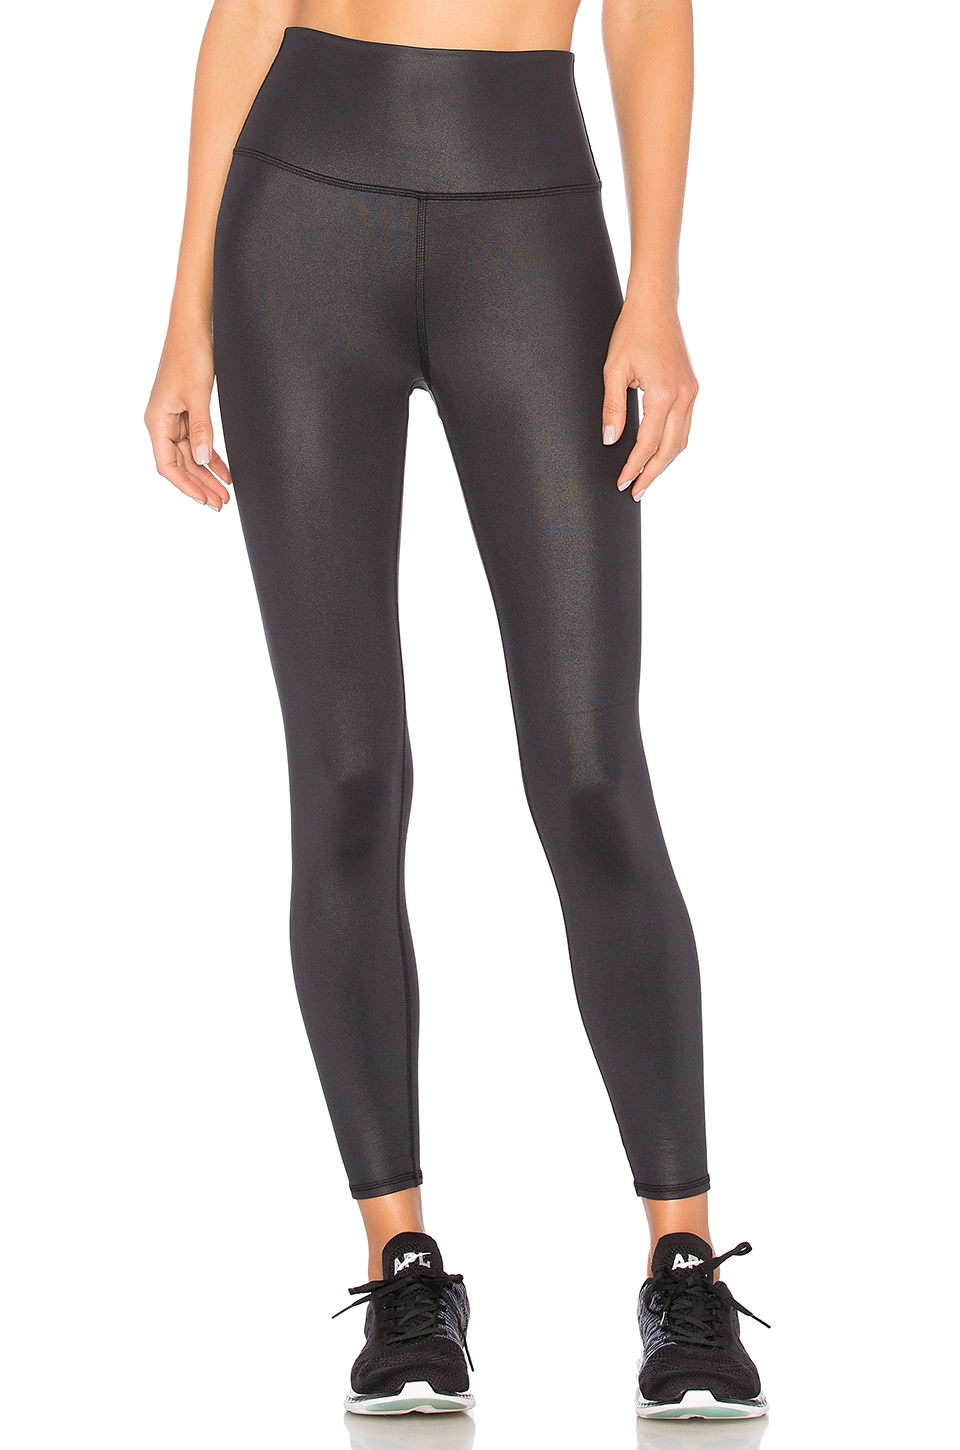 ALO YOGA Airbrush Printed High-Waisted Sport Leggings, Black Houndstooth